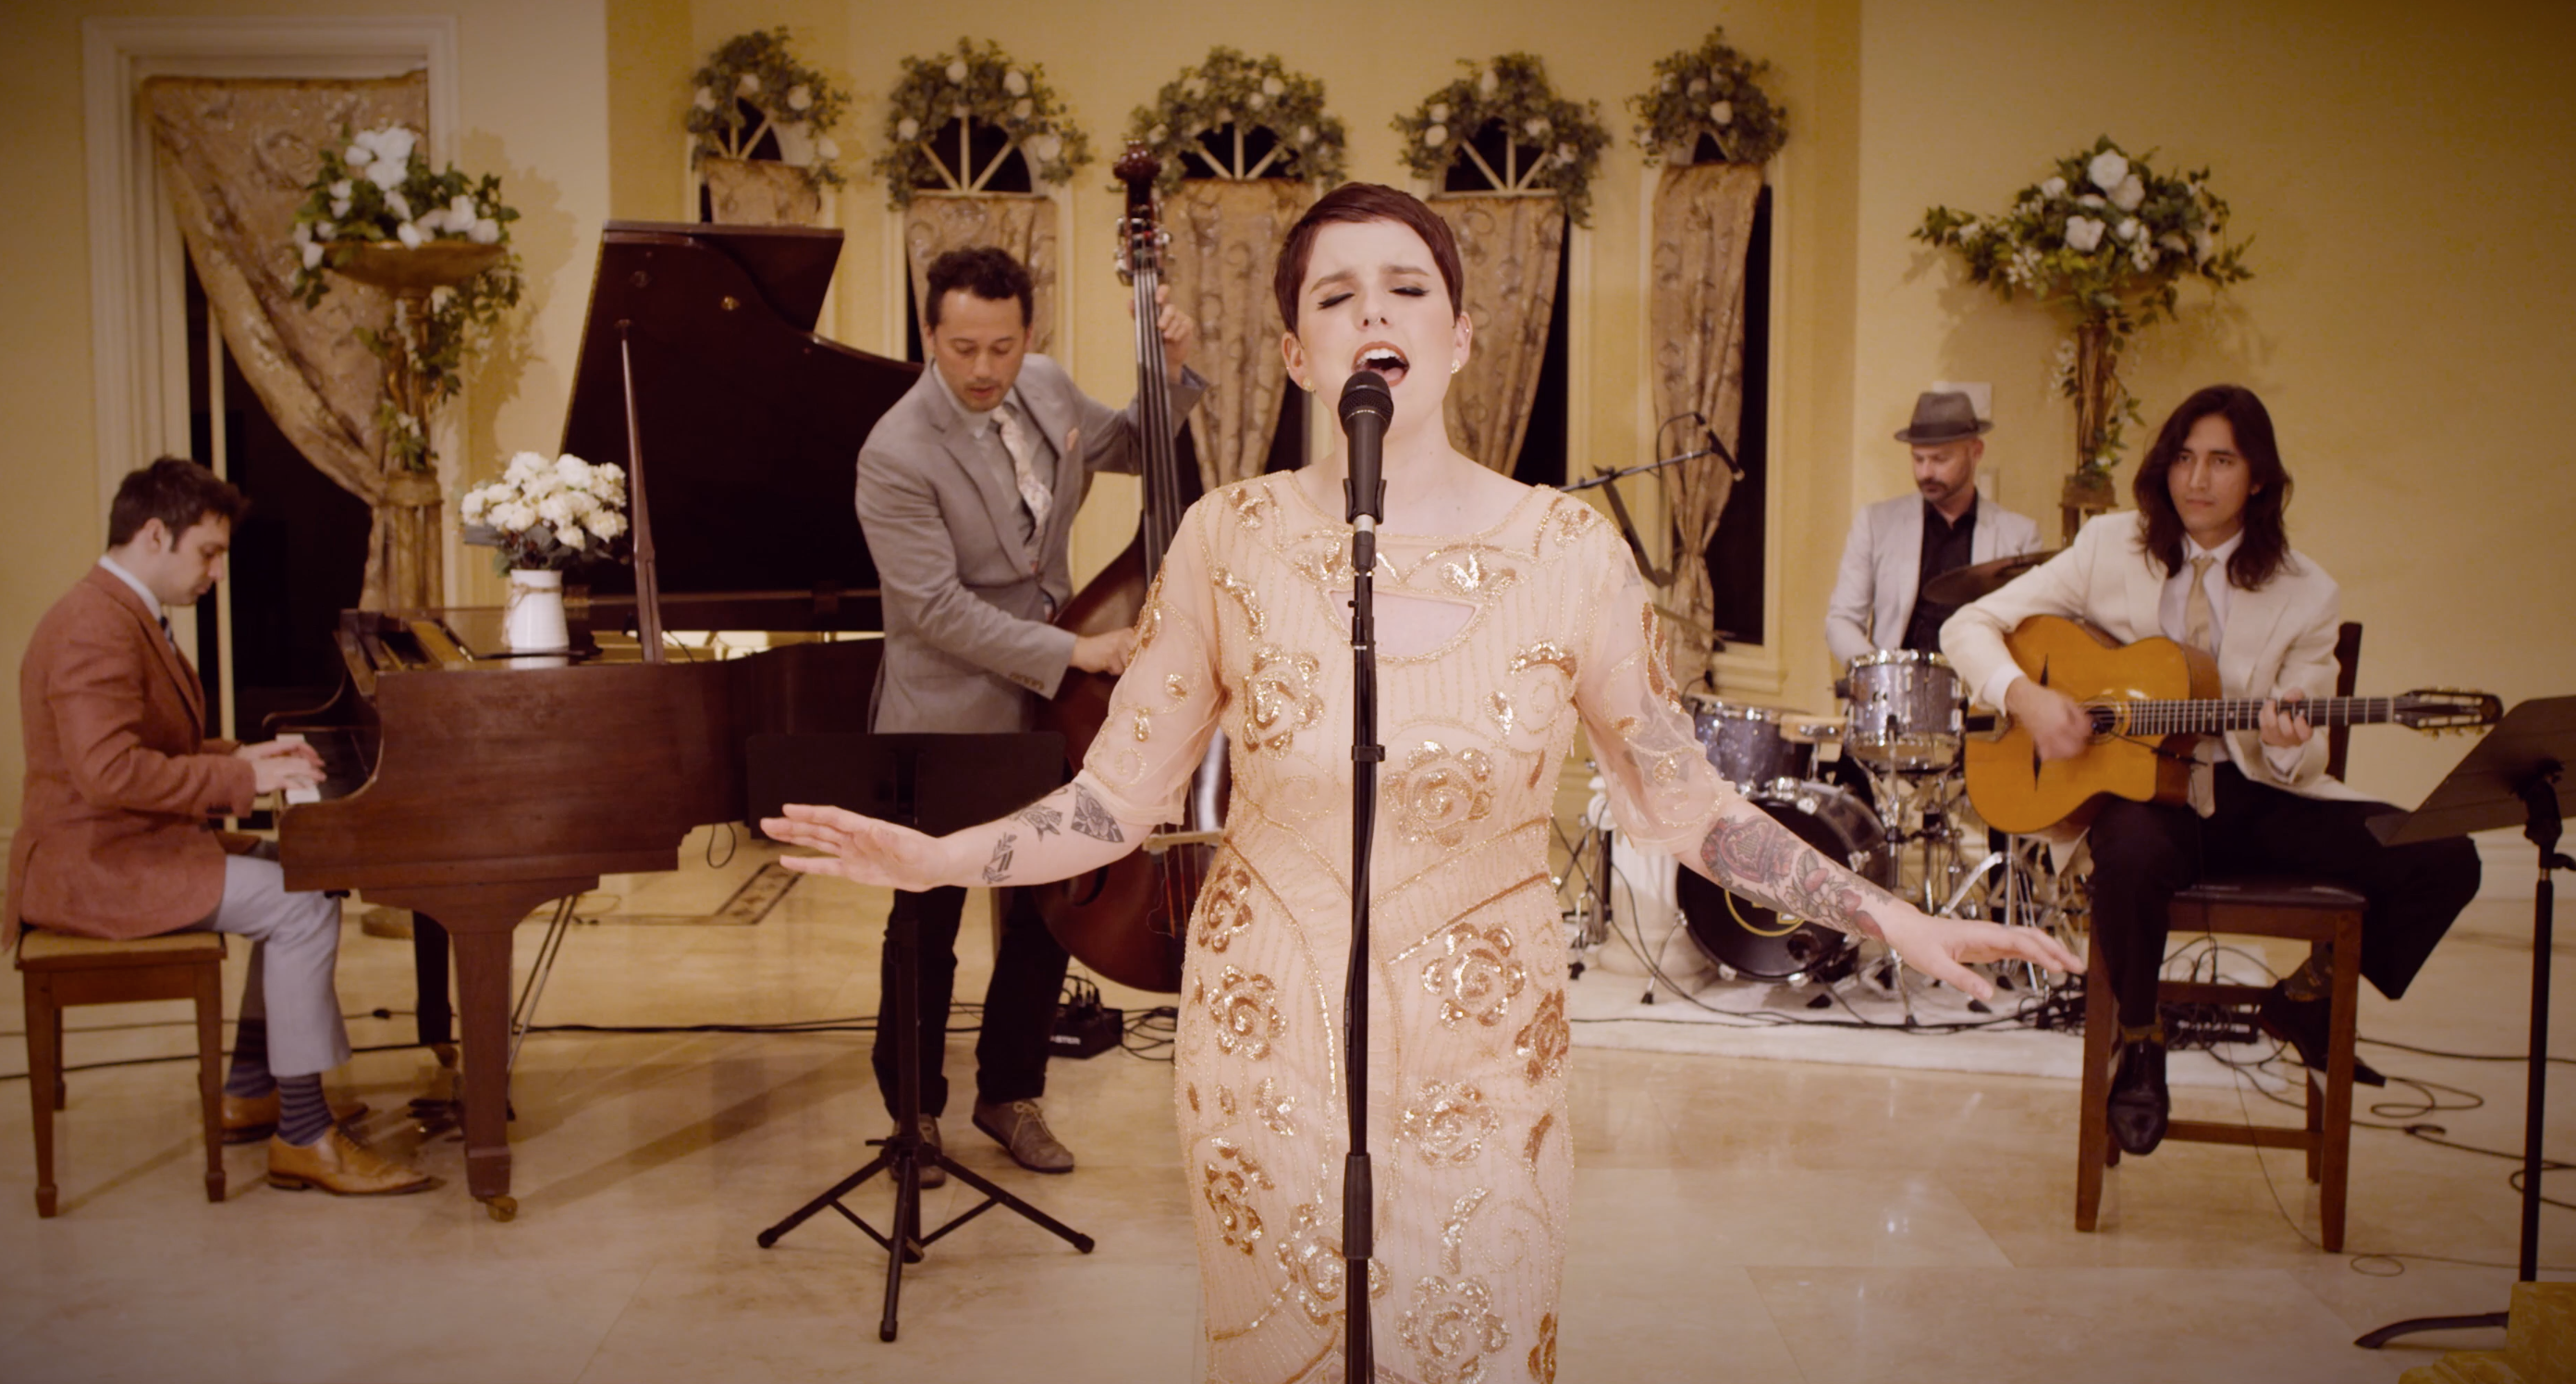 Your Love – The Outfield (Vintage Cover) ft. Cortnie Frazier (#PMJsearch2019 Winner)